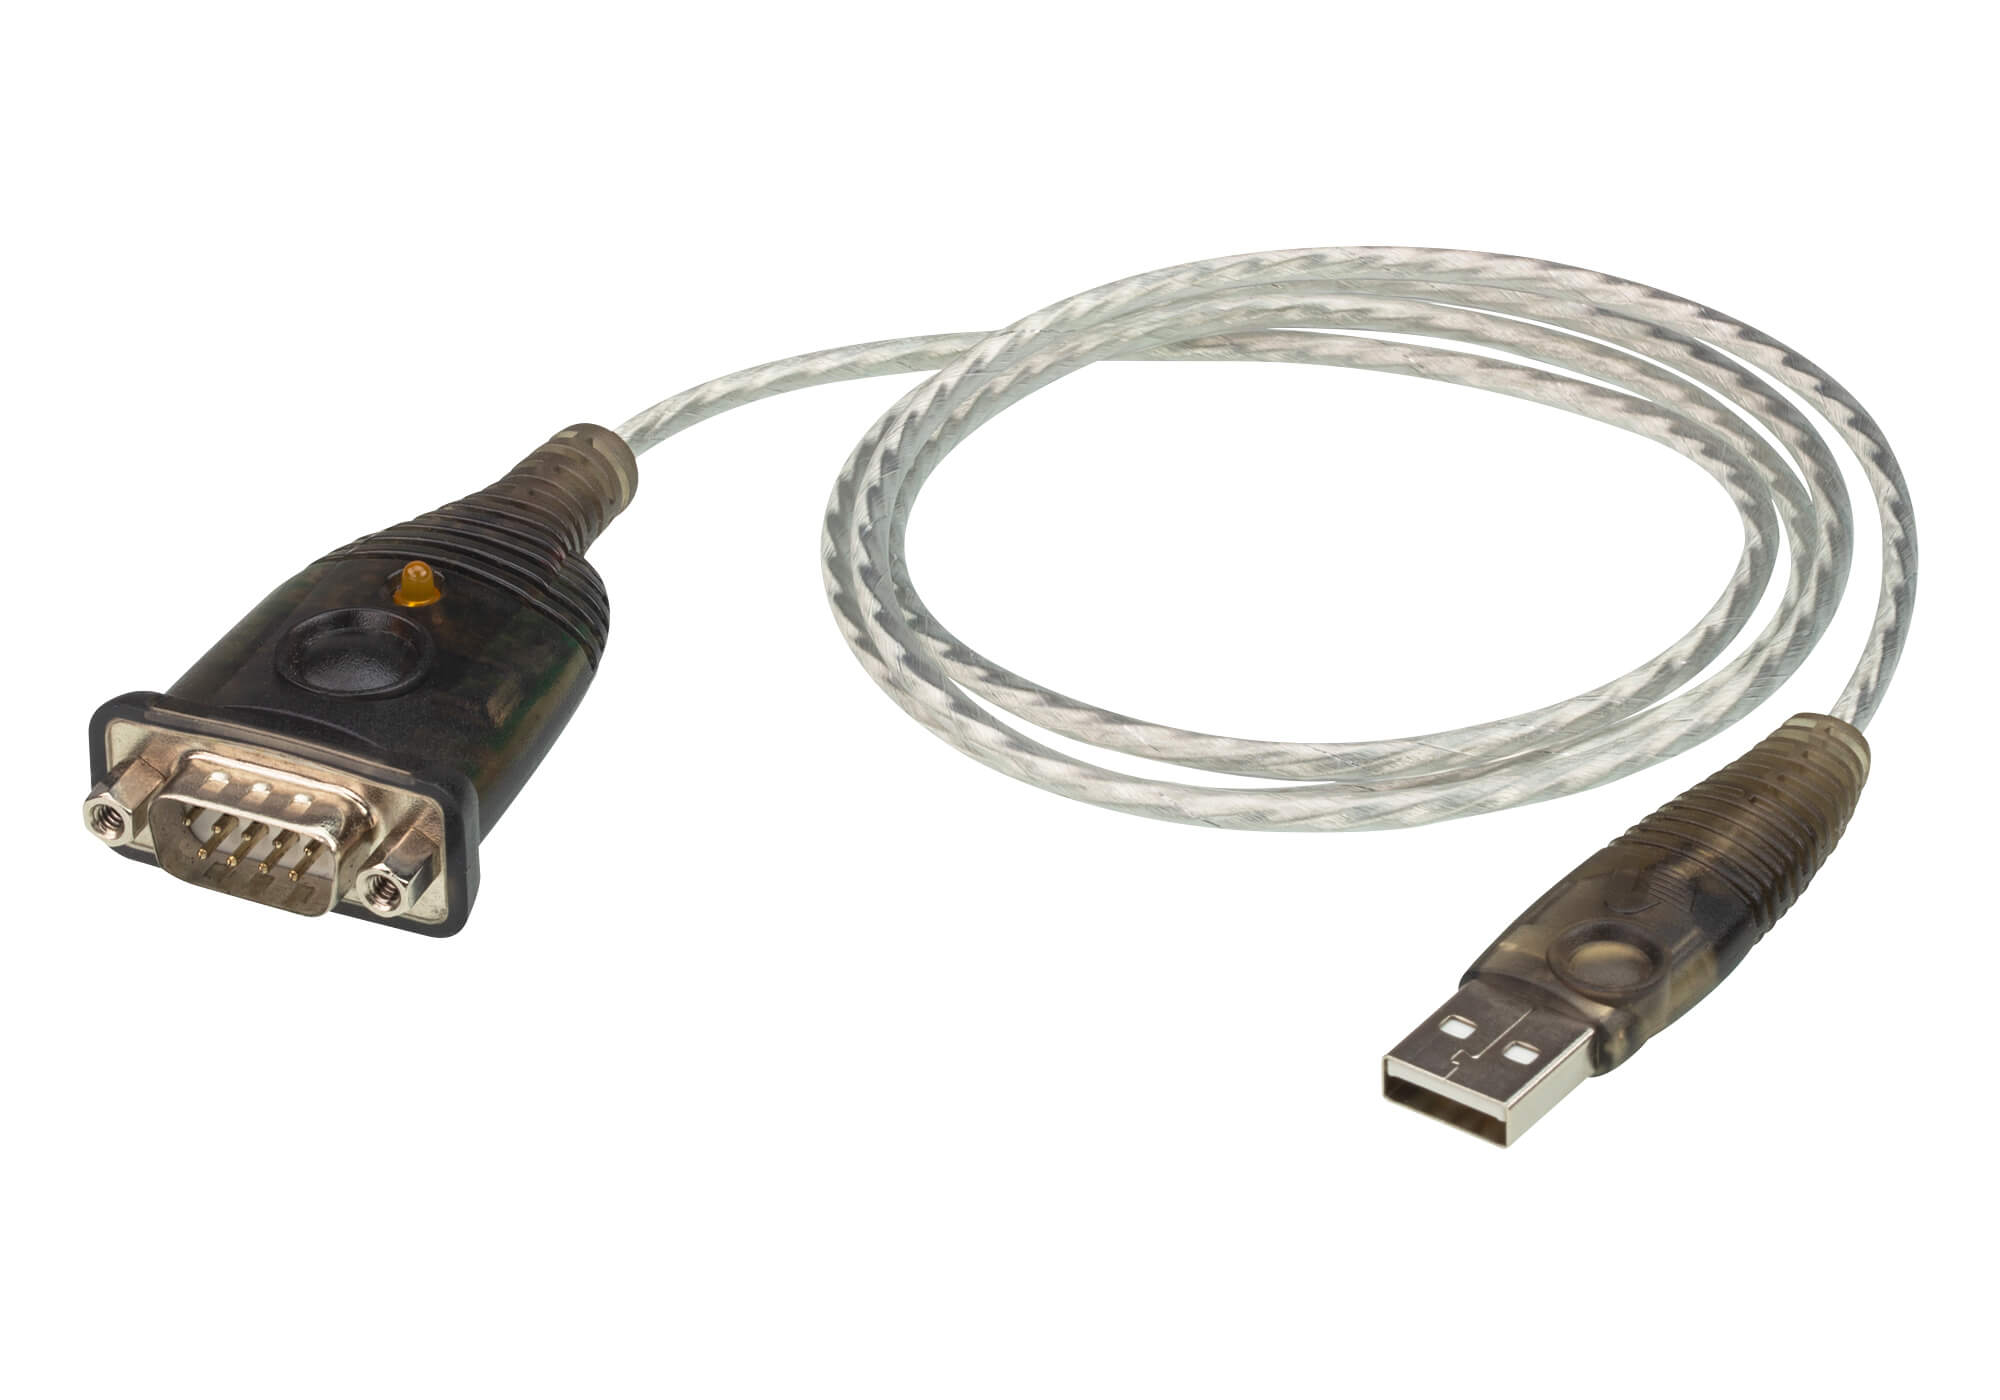 Usb To Rs-232 Adapter (100 Cm) - Uc232A1, Aten Usb Converters - Usb Rs232 Cable Wiring Diagram